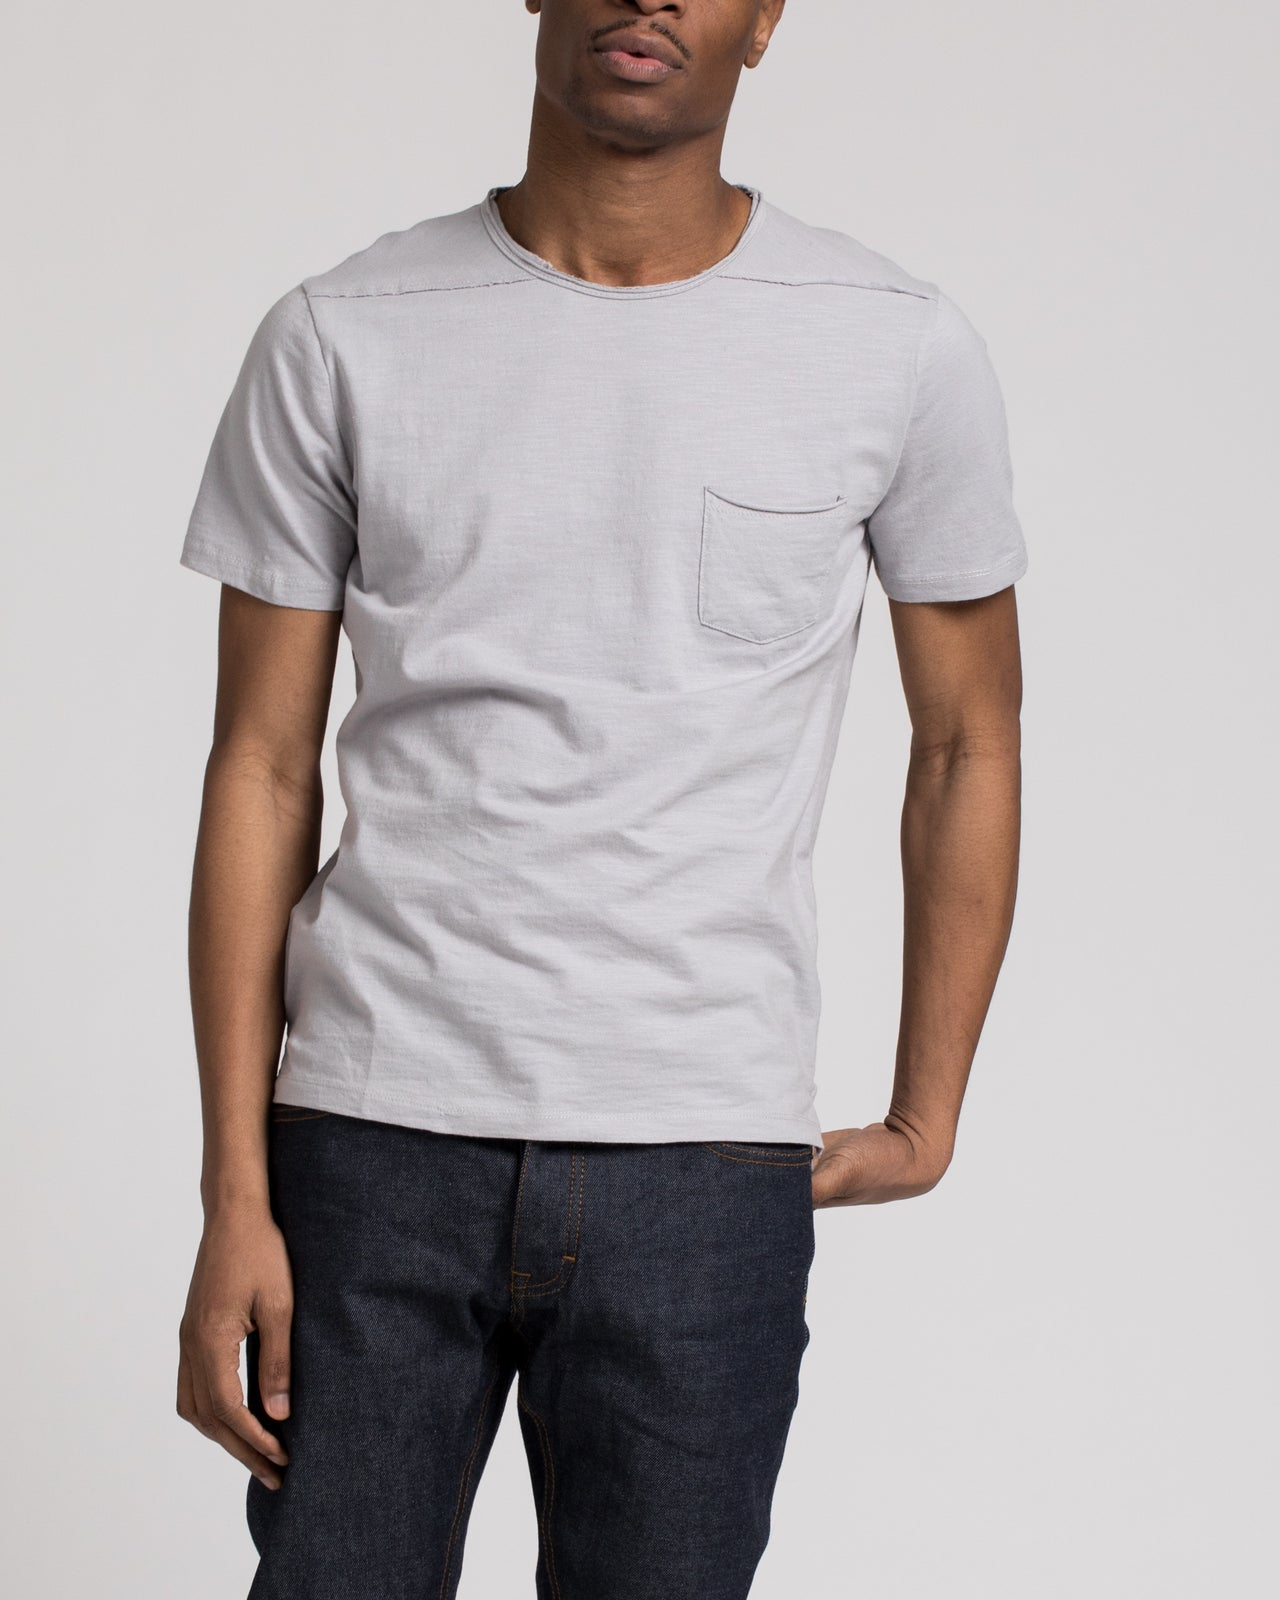 Roll Neck Tee - Color: Silver | Gray